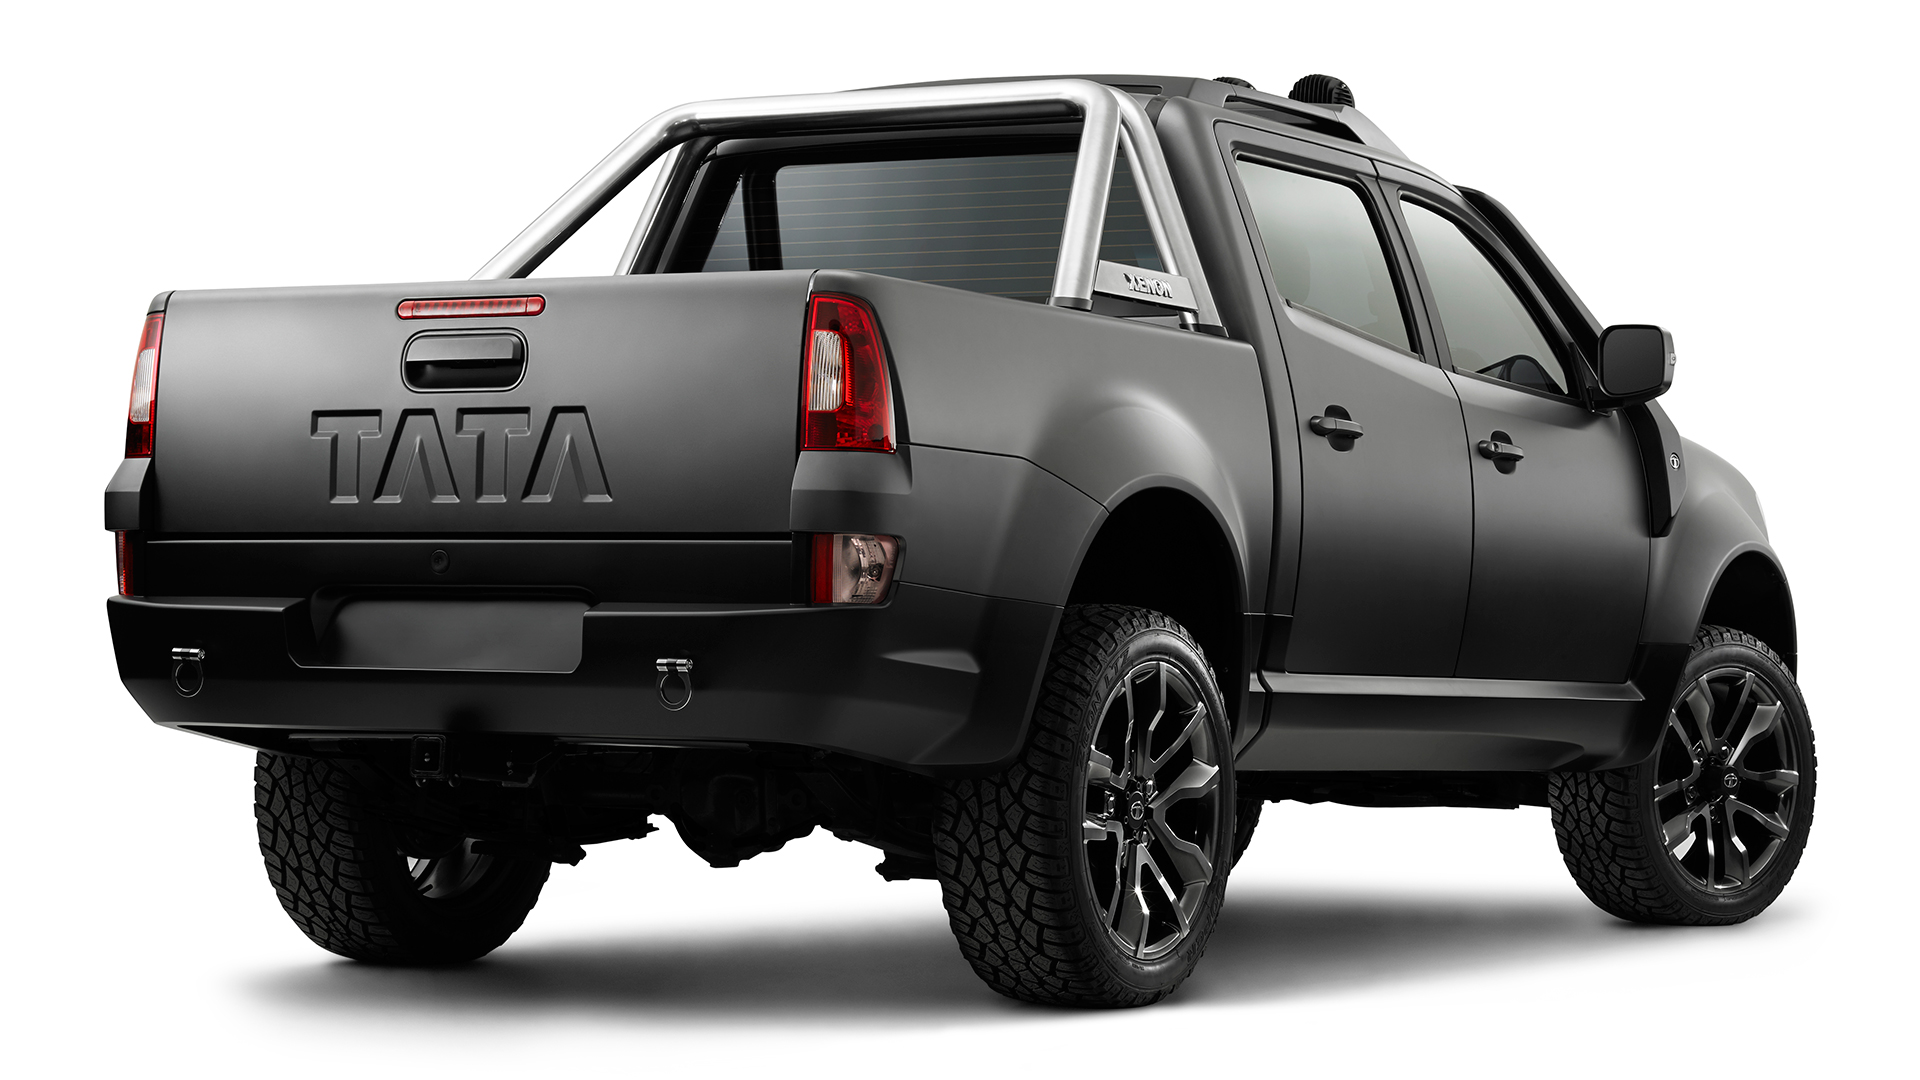 tata-xenon-pick-up-truck-3